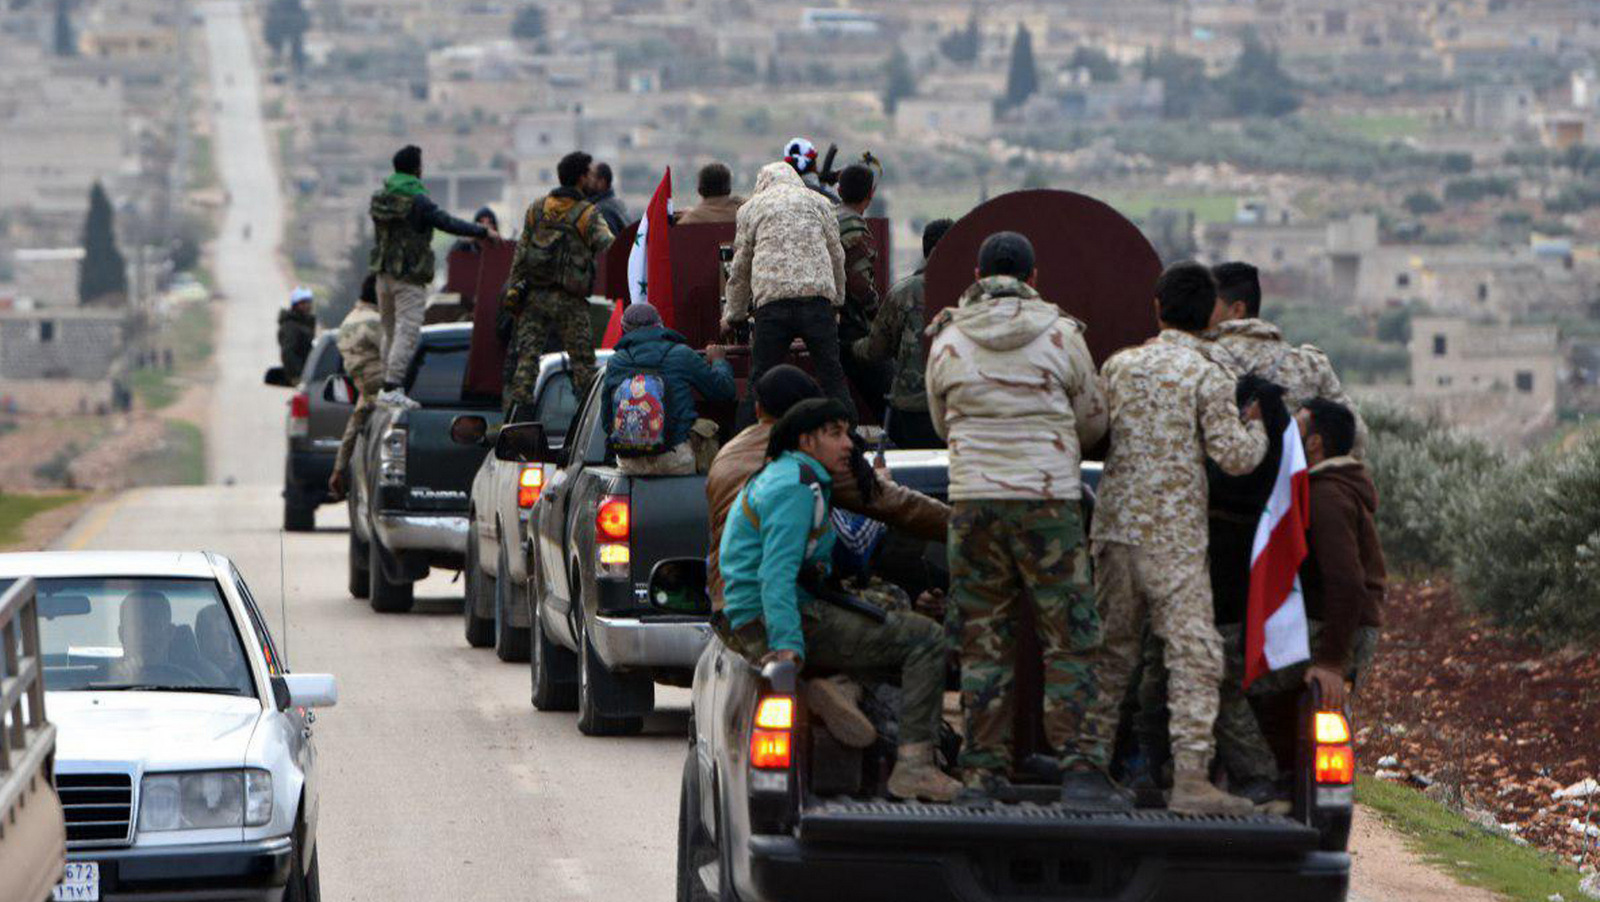 A convoy of militiamen loyal to the Syrian government on their way to aid the Kurds against Turkish forces, in the northern city of Afrin, Syria. (SANA via AP)